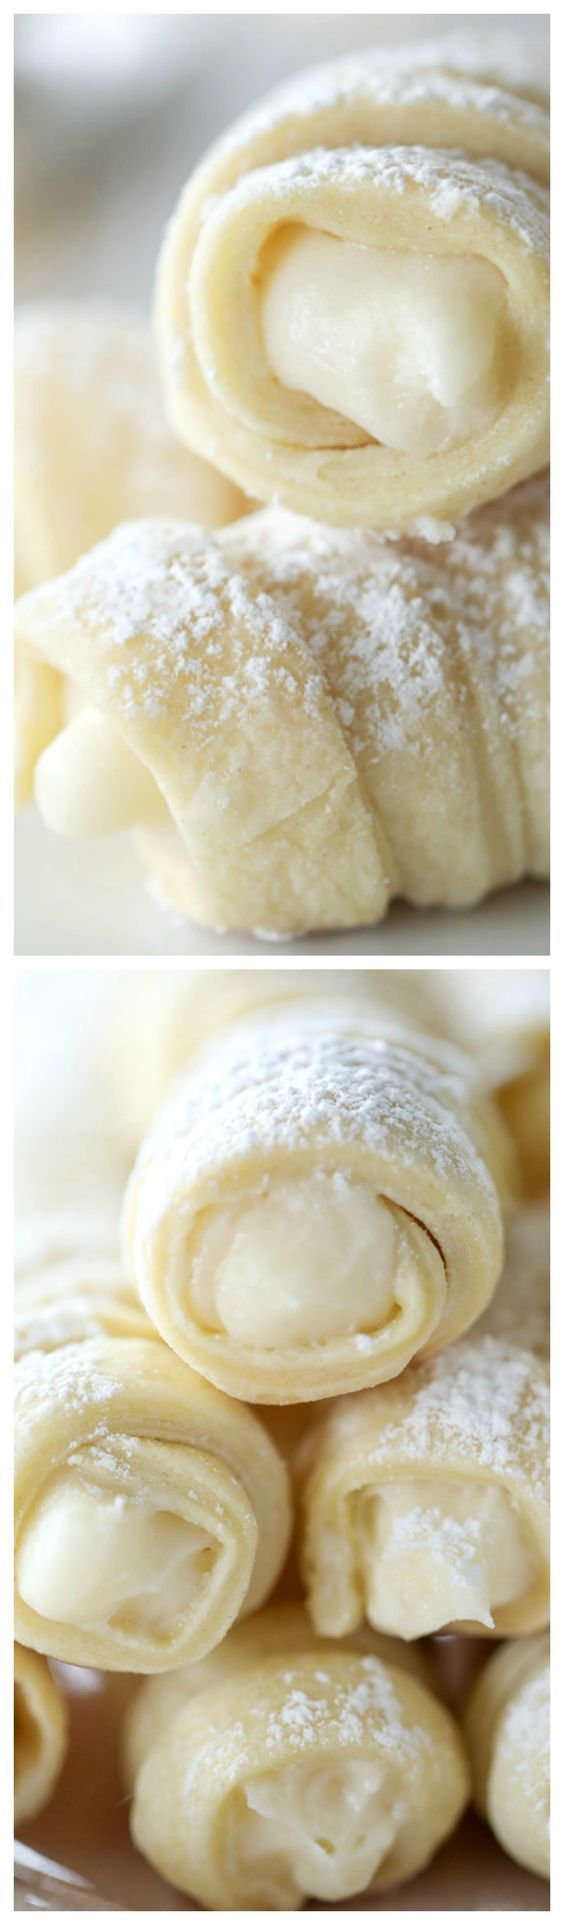 These Cream Horn Cookies (a.k.a. Lady Locks) are one of my favorite classic cookie recipes! #cookie #creamhorn #baking #creamhorns